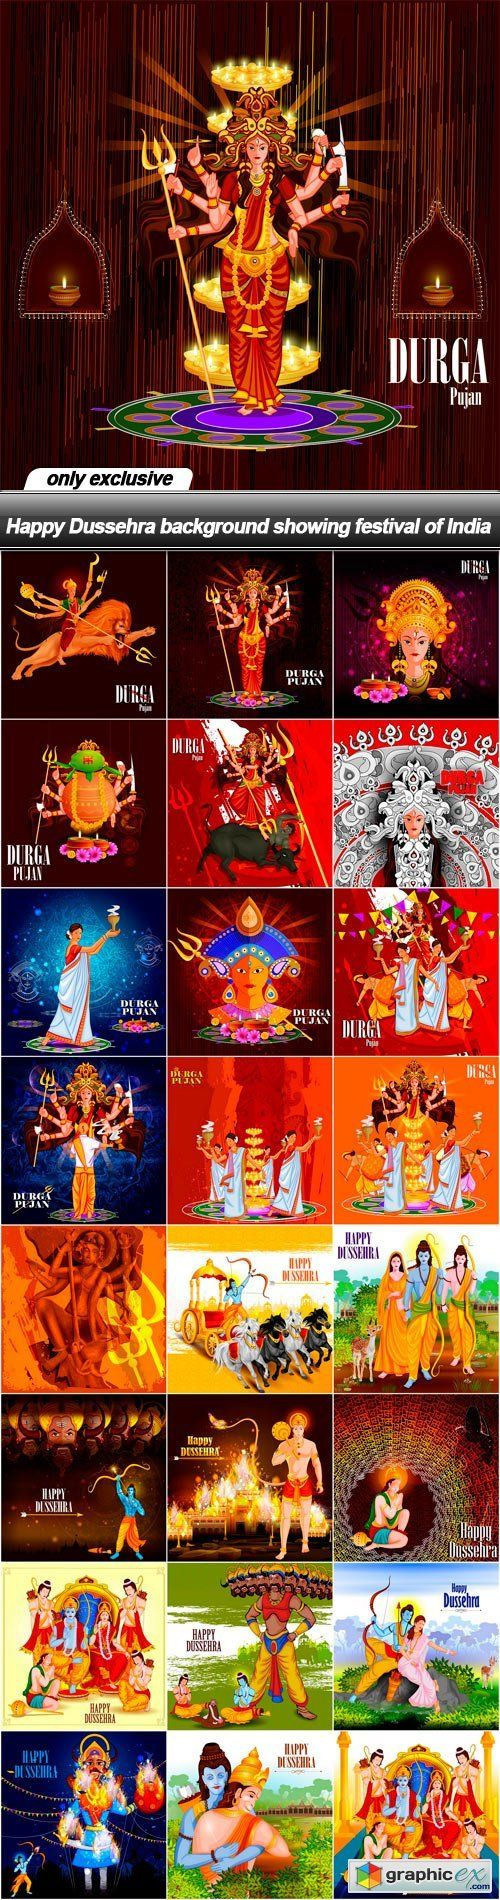 Happy Dussehra background showing festival of India - 25 EPS